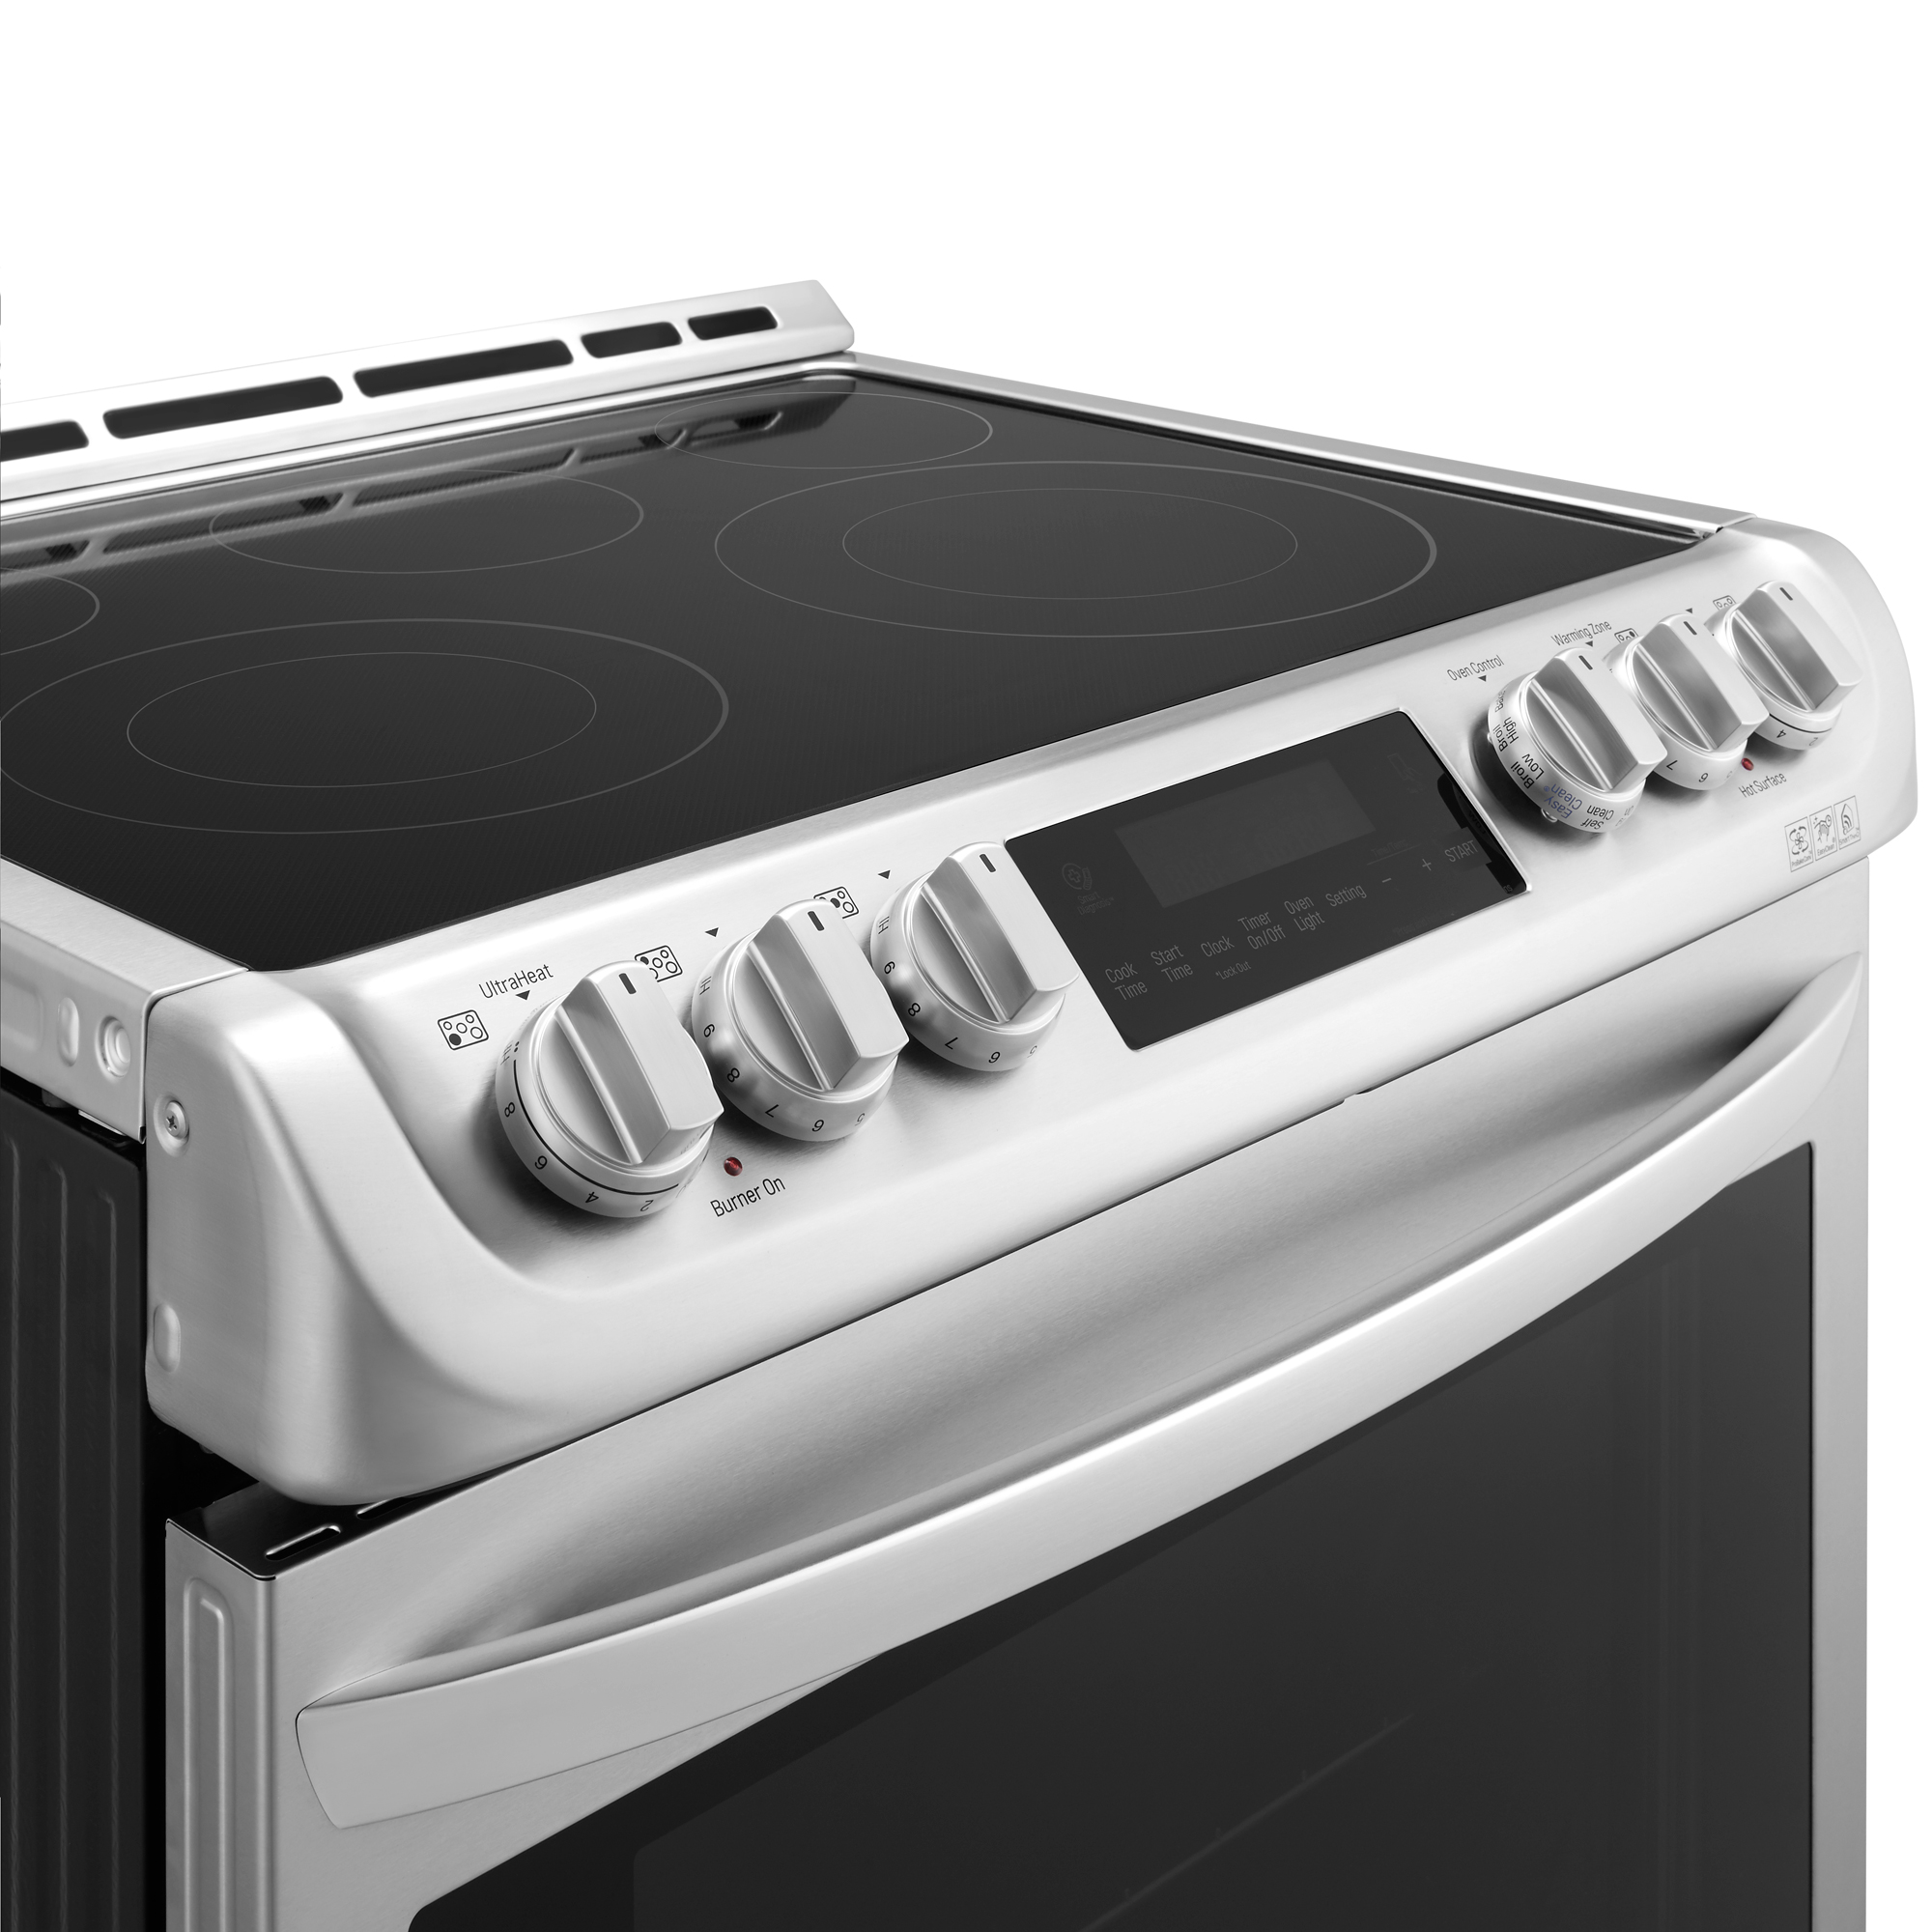 LG LSE4613ST 6.3 cu. ft. Electric Slide-In Range w/ ProBake Convection™ & EasyClean® – Stainless Steel